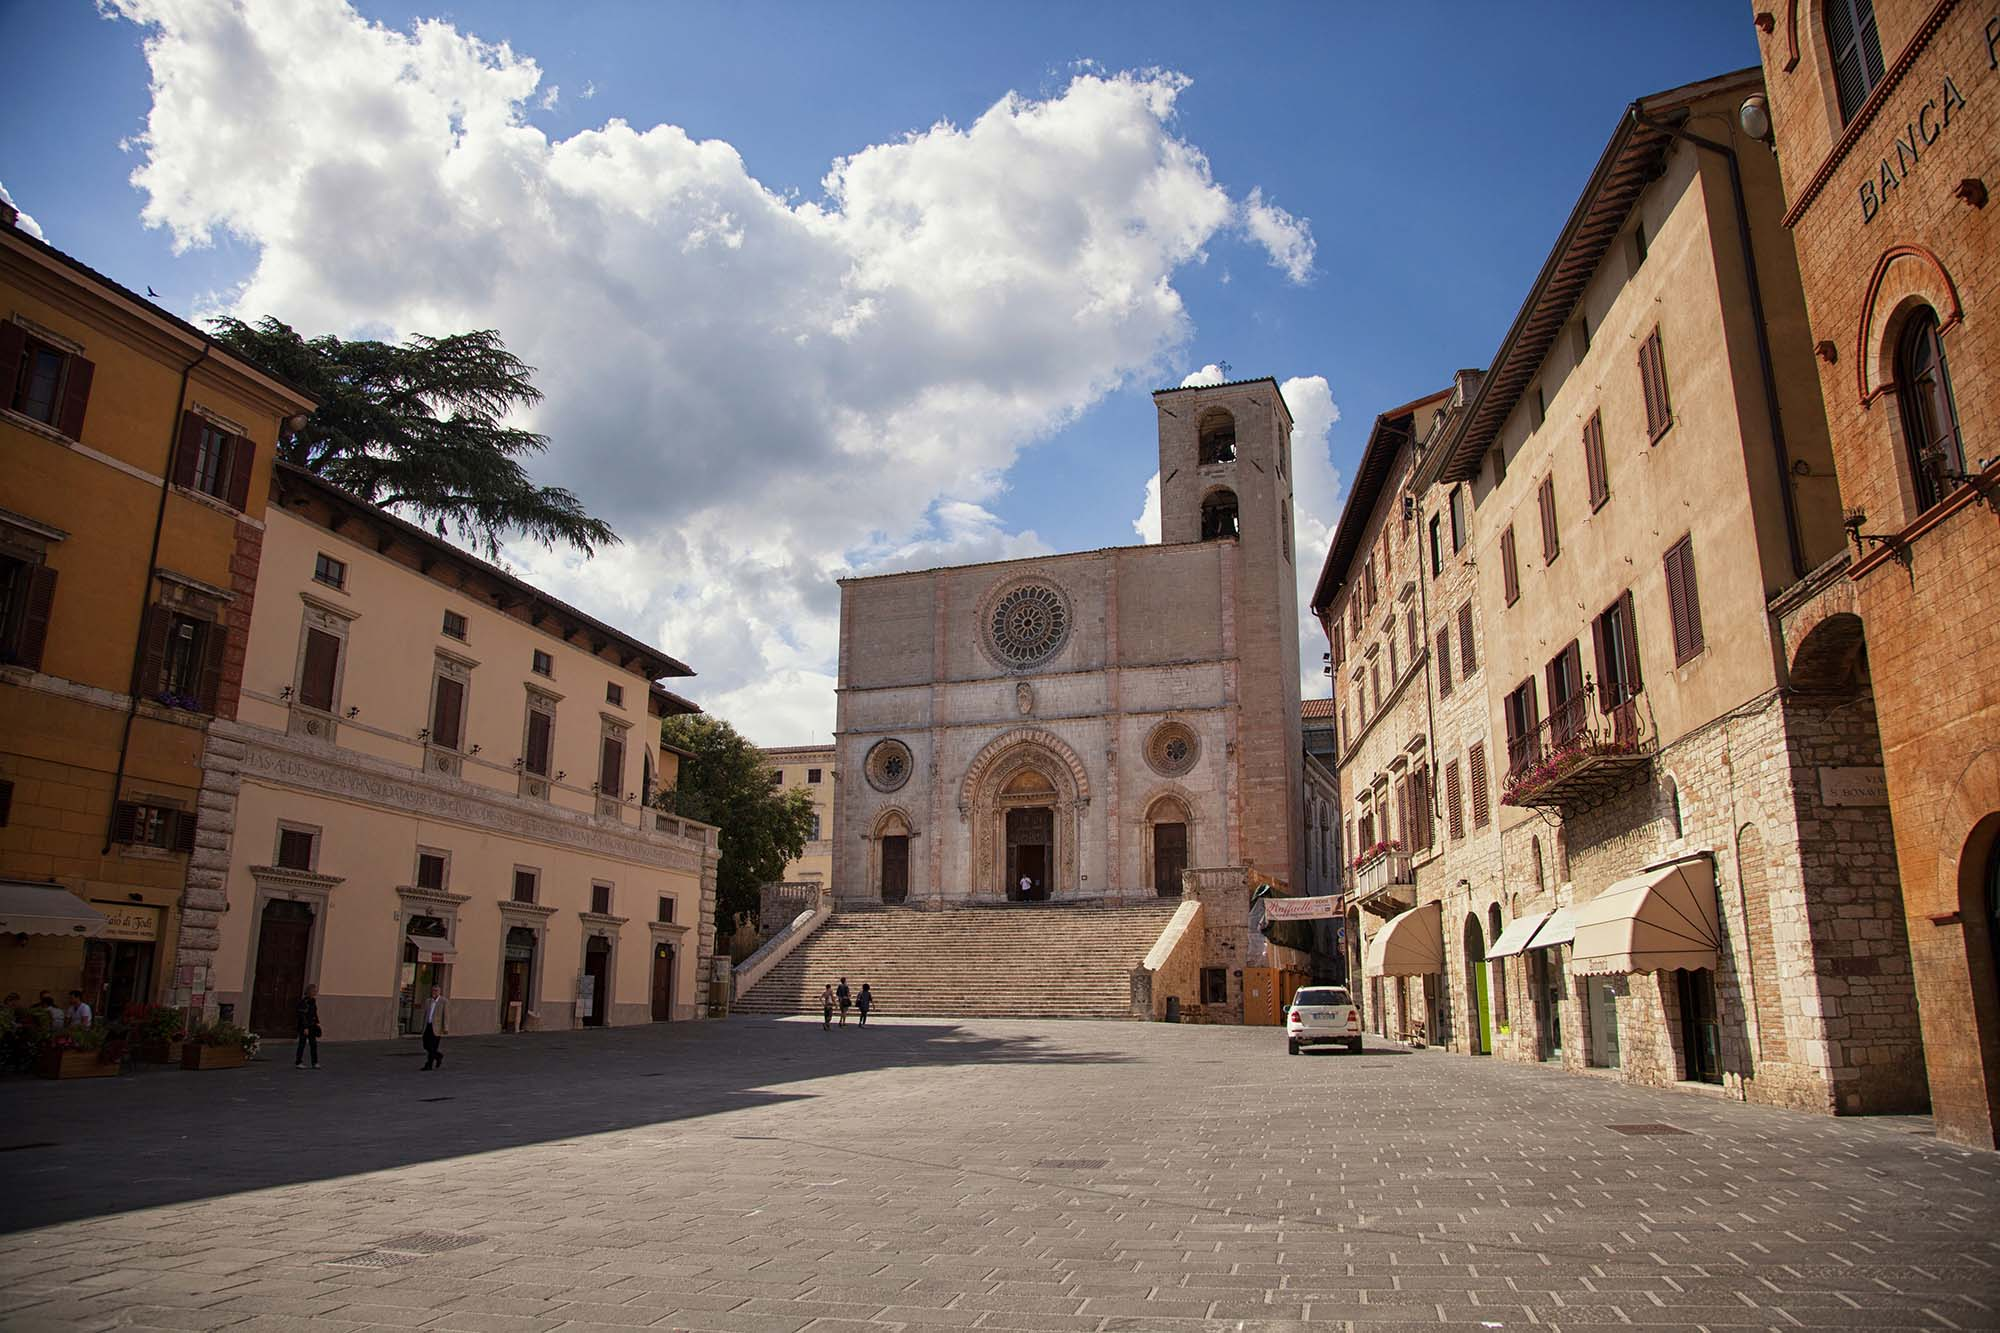 Co-cathedral of the St. Annunziata - Todi